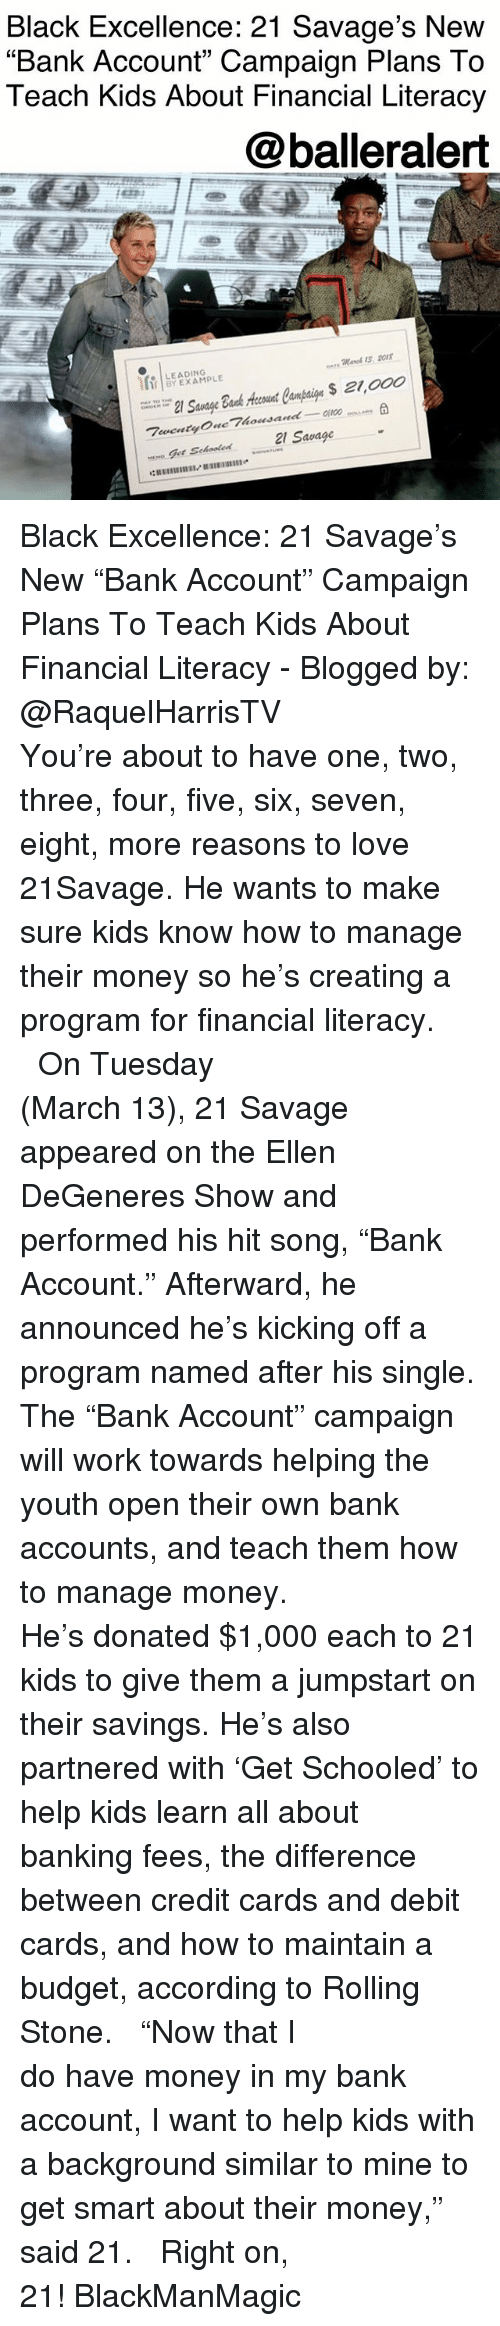 "Ellen DeGeneres, Love, and Memes: Black Excellence: 21 Savage's New  ""Bank Account"" Campaign Plans To  Teach Kids About Financial Literacy  @balleralert  Mares 1I5 2O1  LEADING  21 Savage Black Excellence: 21 Savage's New ""Bank Account"" Campaign Plans To Teach Kids About Financial Literacy - Blogged by: @RaquelHarrisTV ⠀⠀⠀⠀⠀⠀⠀⠀⠀ ⠀⠀⠀⠀⠀⠀⠀⠀⠀ You're about to have one, two, three, four, five, six, seven, eight, more reasons to love 21Savage. He wants to make sure kids know how to manage their money so he's creating a program for financial literacy. ⠀⠀⠀⠀⠀⠀⠀⠀⠀ ⠀⠀⠀⠀⠀⠀⠀⠀⠀ On Tuesday (March 13), 21 Savage appeared on the Ellen DeGeneres Show and performed his hit song, ""Bank Account."" Afterward, he announced he's kicking off a program named after his single. The ""Bank Account"" campaign will work towards helping the youth open their own bank accounts, and teach them how to manage money. ⠀⠀⠀⠀⠀⠀⠀⠀⠀ ⠀⠀⠀⠀⠀⠀⠀⠀⠀ He's donated $1,000 each to 21 kids to give them a jumpstart on their savings. He's also partnered with 'Get Schooled' to help kids learn all about banking fees, the difference between credit cards and debit cards, and how to maintain a budget, according to Rolling Stone. ⠀⠀⠀⠀⠀⠀⠀⠀⠀ ⠀⠀⠀⠀⠀⠀⠀⠀⠀ ""Now that I do have money in my bank account, I want to help kids with a background similar to mine to get smart about their money,"" said 21. ⠀⠀⠀⠀⠀⠀⠀⠀⠀ ⠀⠀⠀⠀⠀⠀⠀⠀⠀ Right on, 21! BlackManMagic"